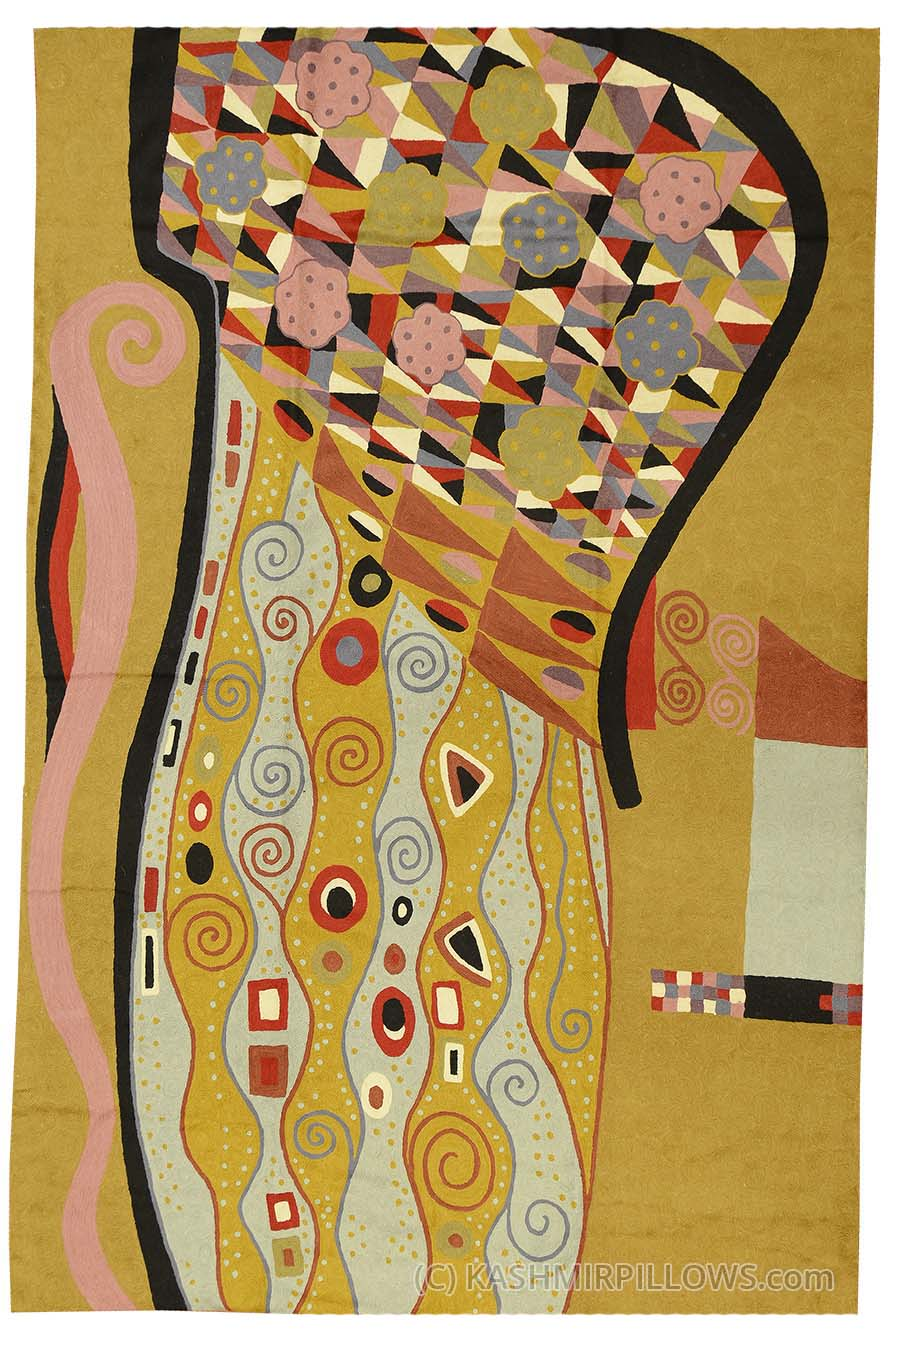 Examplary Klimt Rugs Abstract Wall Hangings Hand Embroidered Accent Rug Tapestry Art Nouveau Yellow Carpet Decorative Wall Art Tapestries Artwork 1c art Modern Wall Art